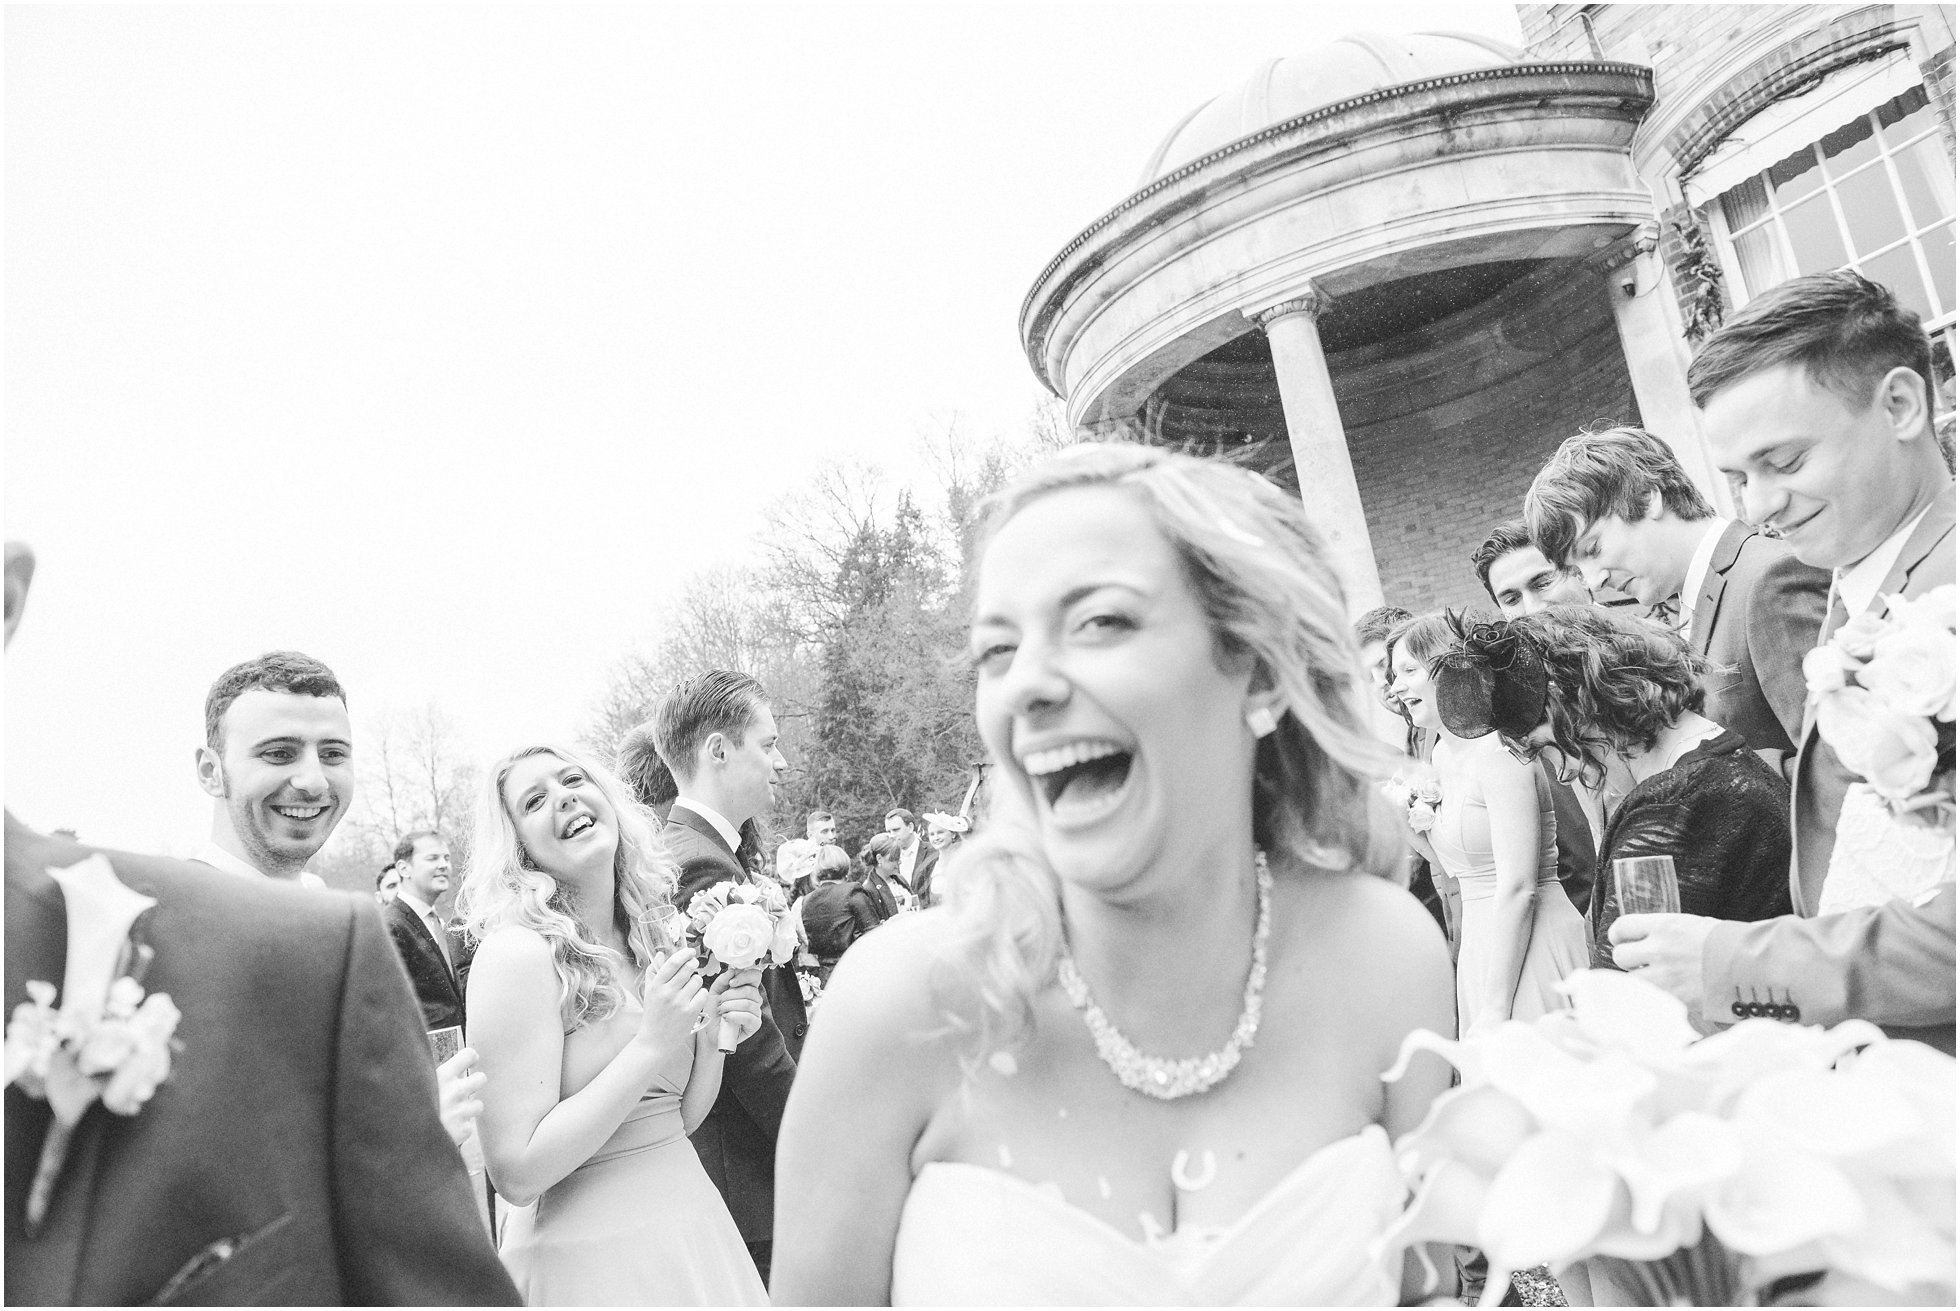 The bride after having confetti thrown at her